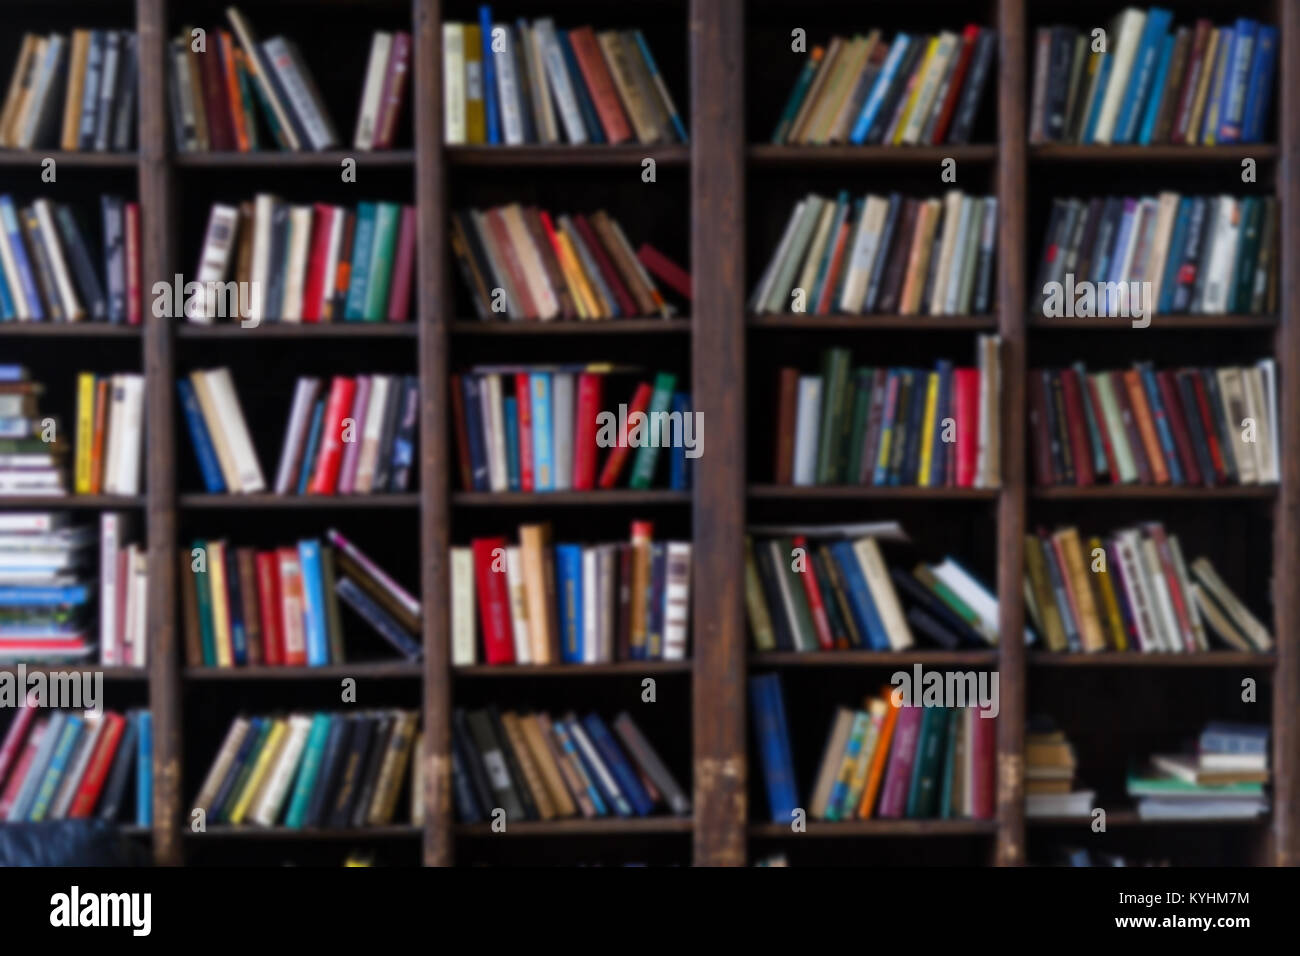 Blurred photo of colorful books in shelves - Stock Image